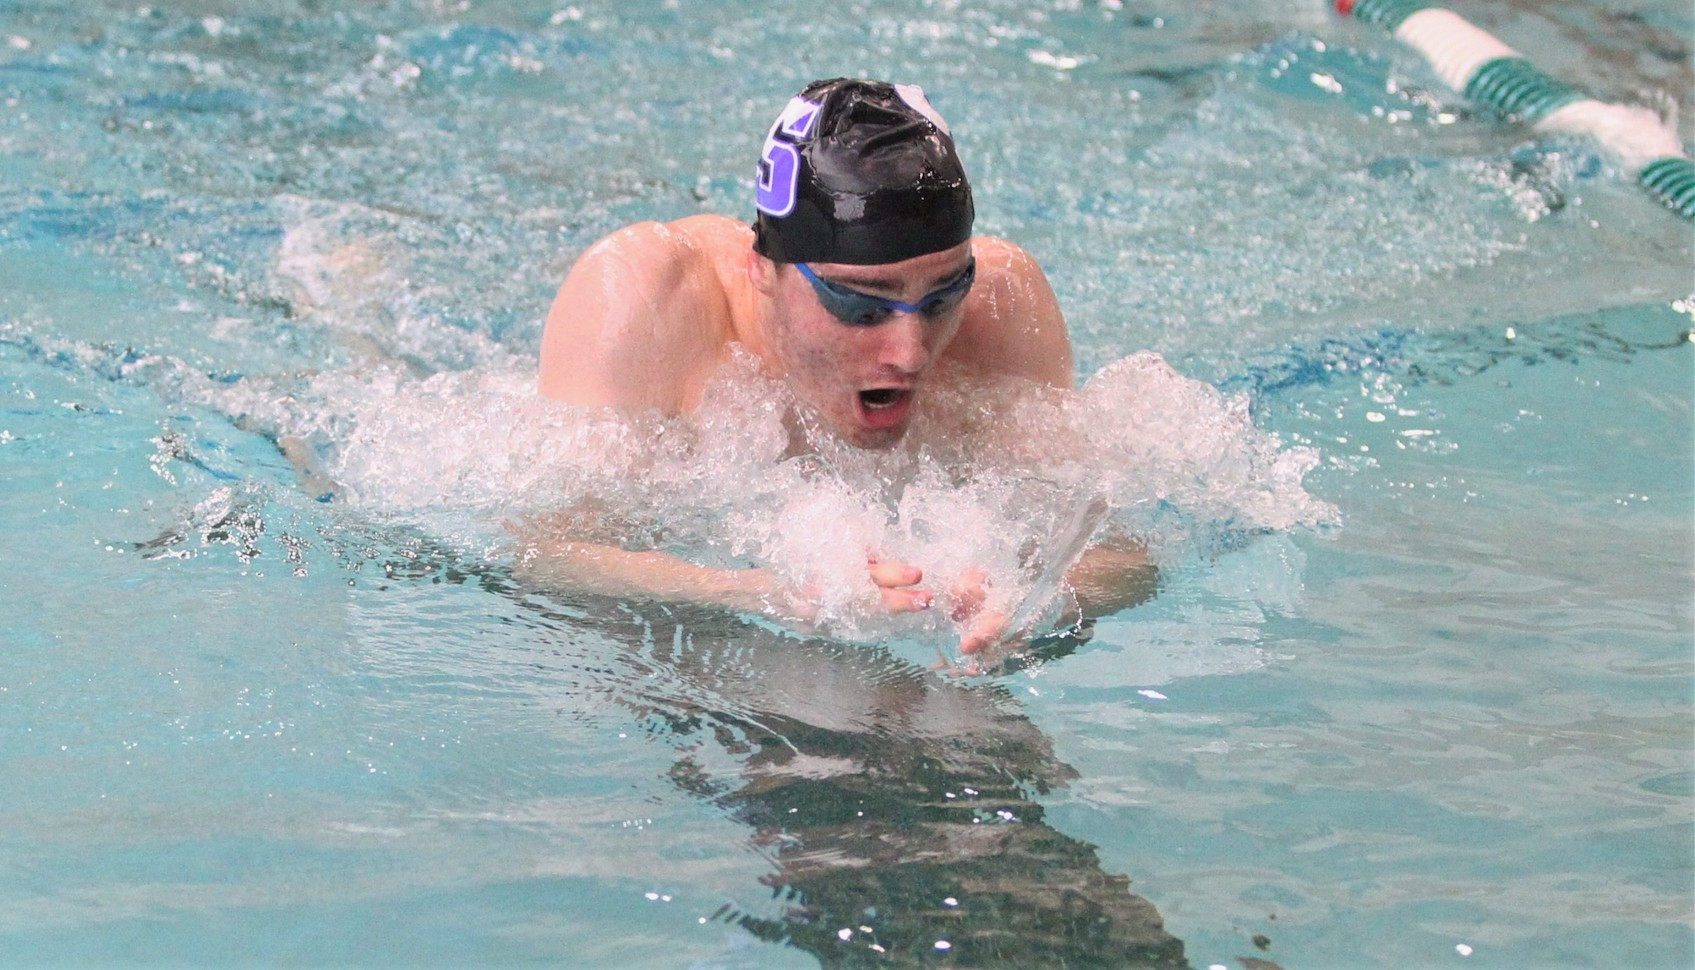 Junior Jack Donnelly won a Landmark Conference title in the 100-breaststroke on Saturday night in Germantown, Md. © Photo by Timothy R. Dougherty / doubleeaglephotography.com